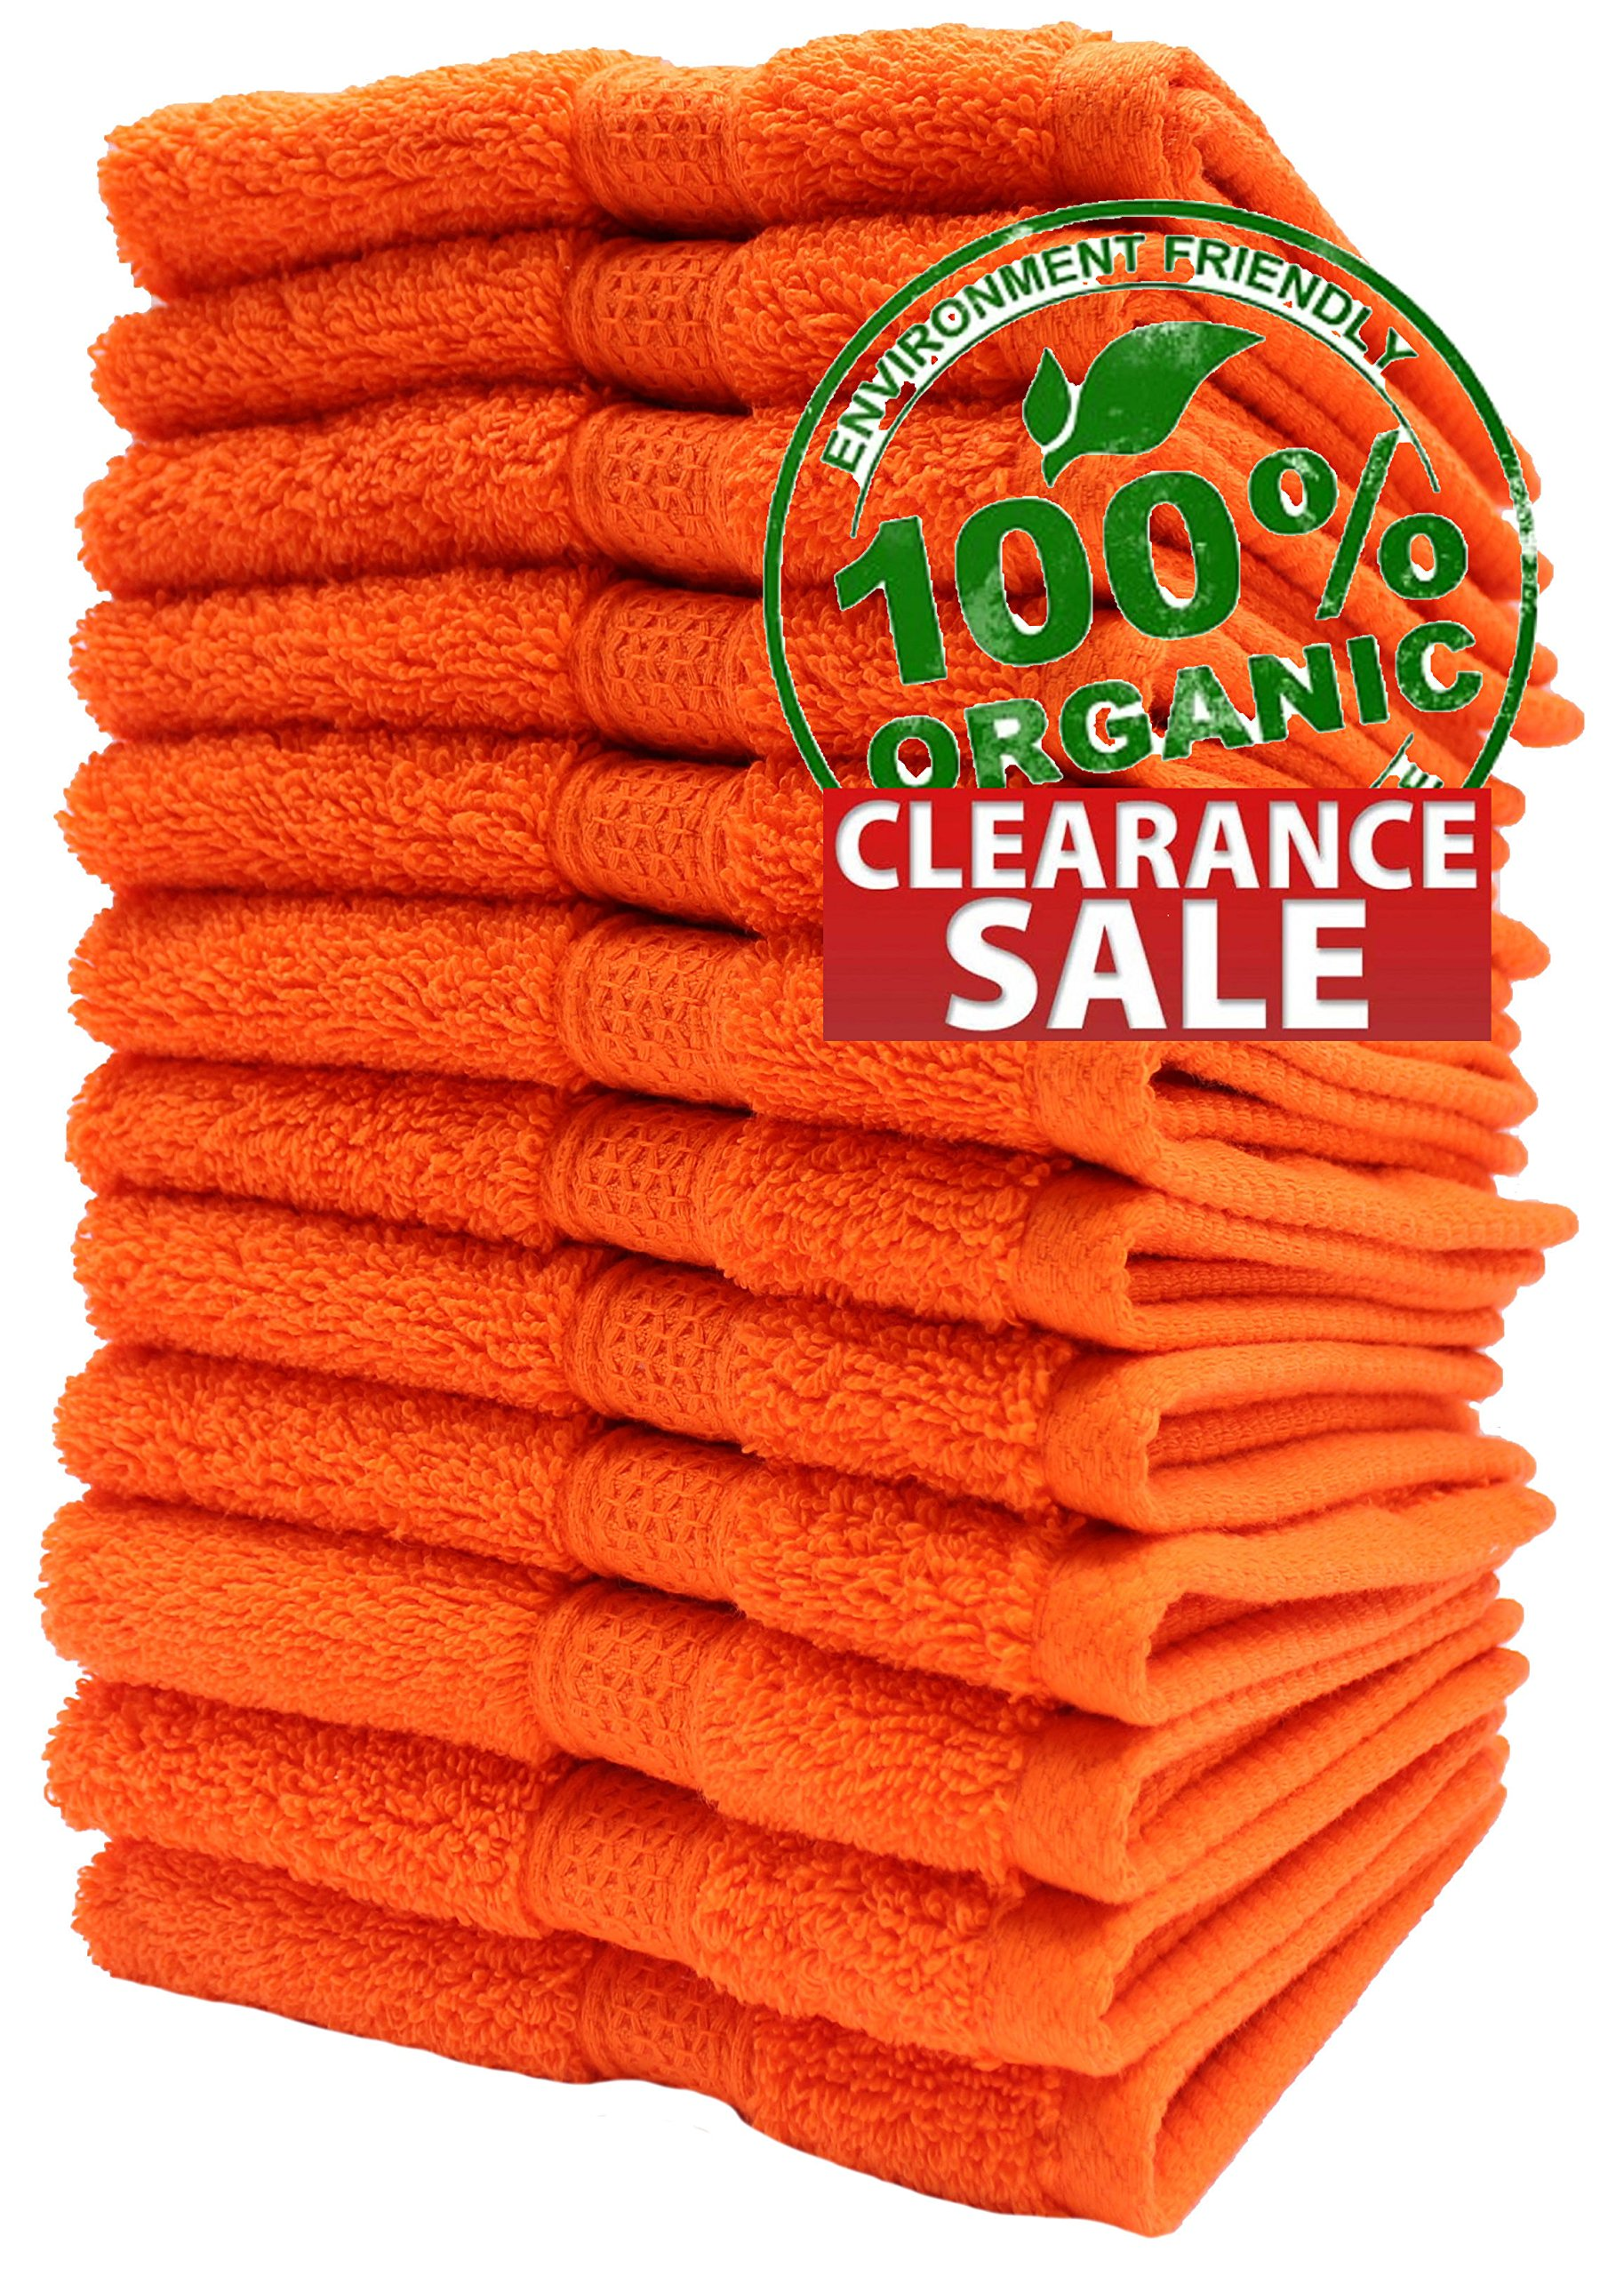 100% Organic Turkish Cotton Premium Quality Luxury Hotel & Spa Turkish Towels Super Soft, Plush, Ultra Absorbent, Quick dry, long lasting HUGE SALE!>>(Tangerine Orange, Washcloth - Set of 12) by Aspendos Linen